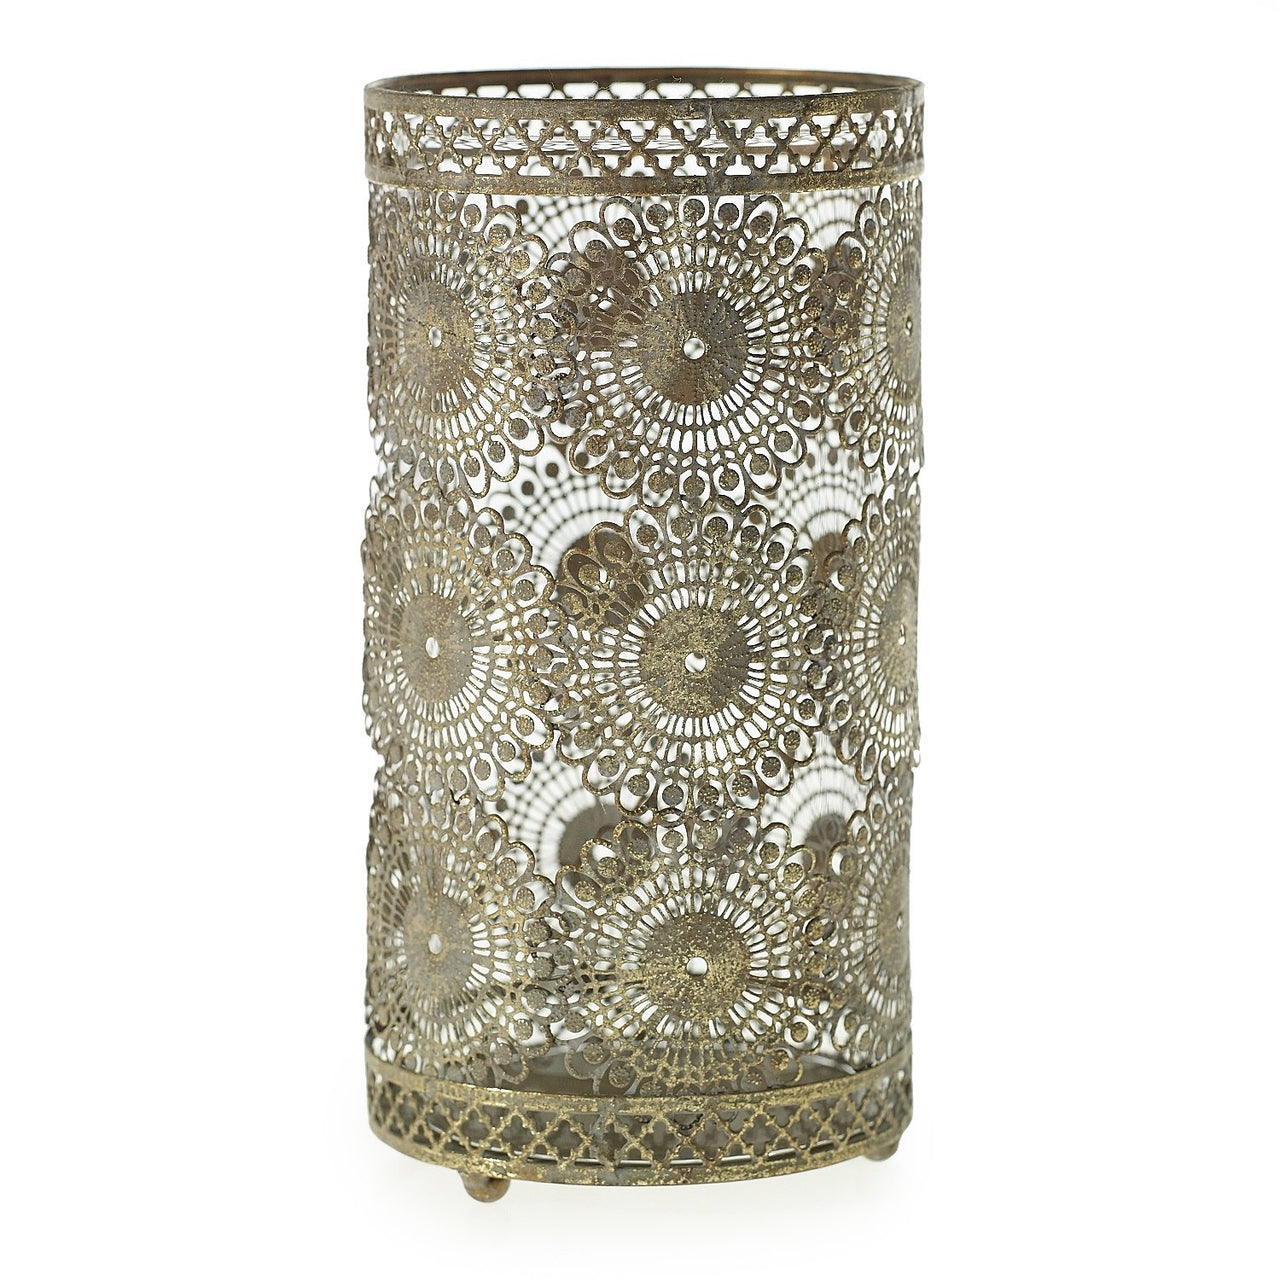 Tetouan Votive - PoppyandPeaches.com - Accent Decor